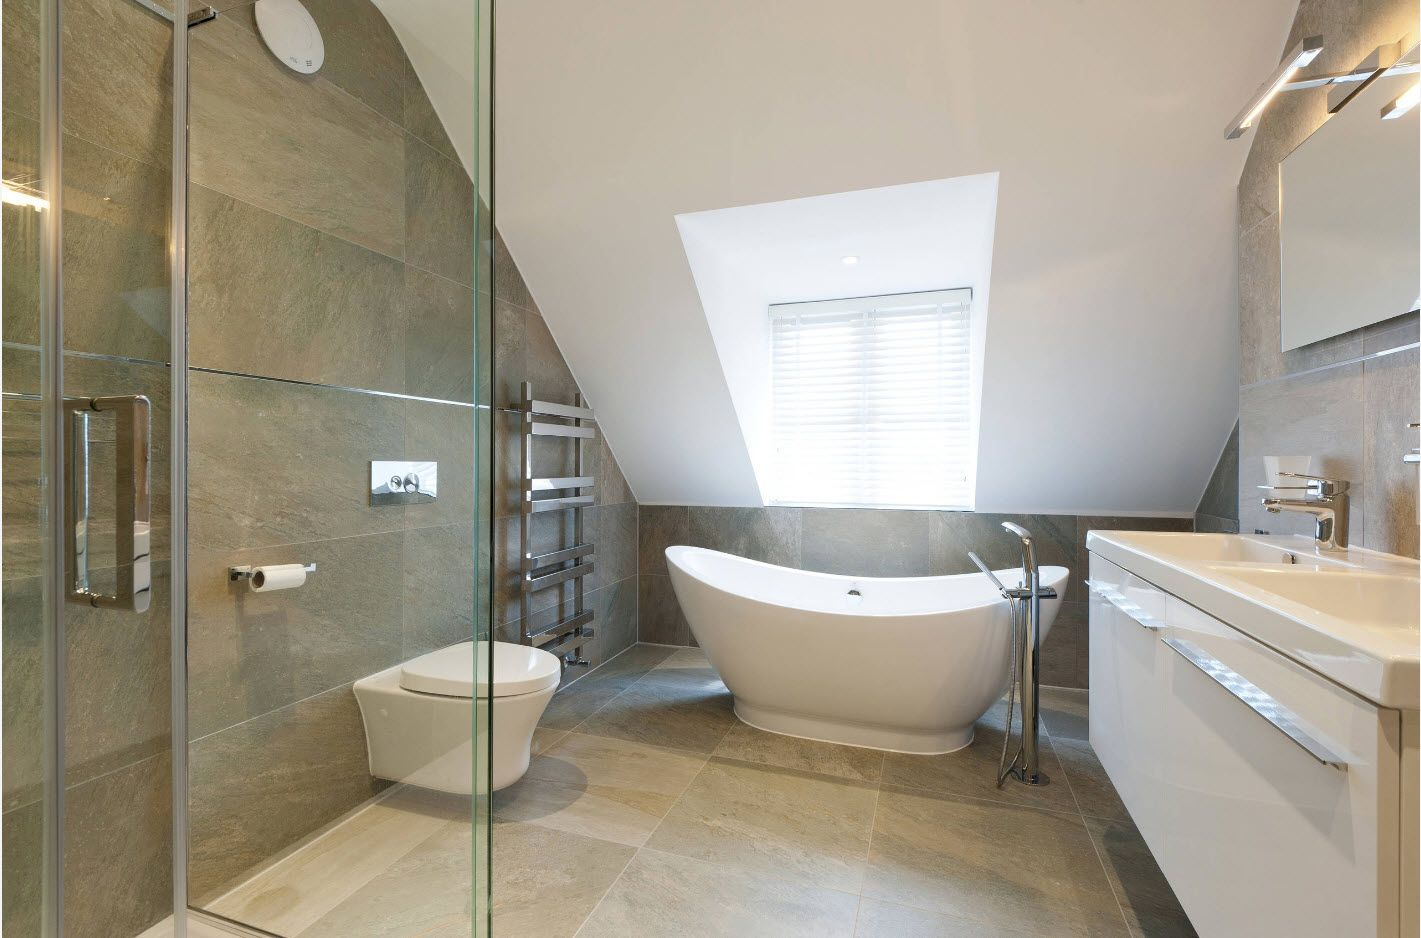 Loft bathroom's spectacular design with large skylight window and gray tiled walls and floor